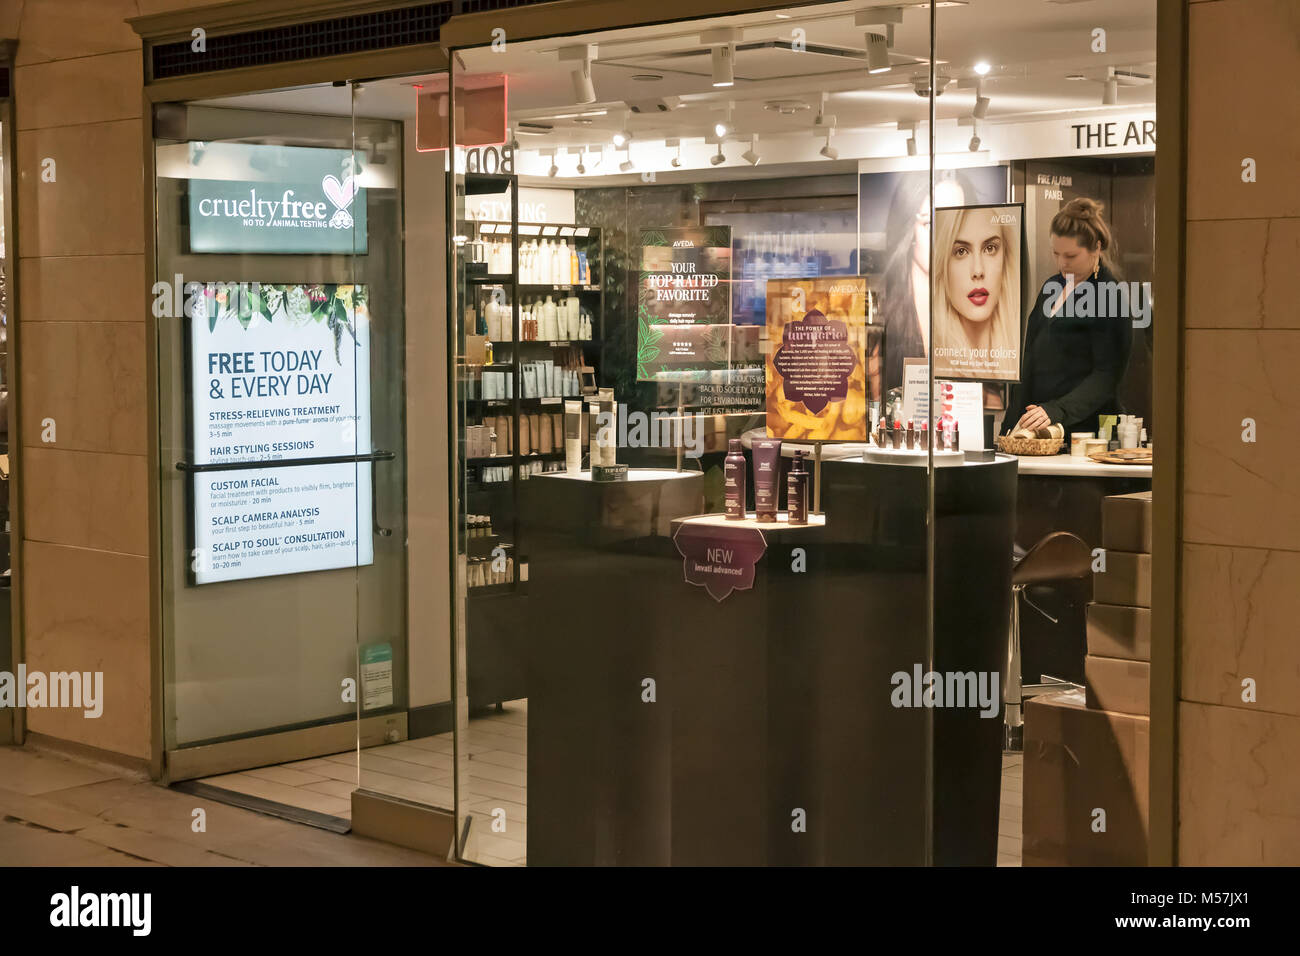 'Cruelty Free' 'No Animal Testing' sign on the front door of a hair, skin, and cosmetics store. - Stock Image